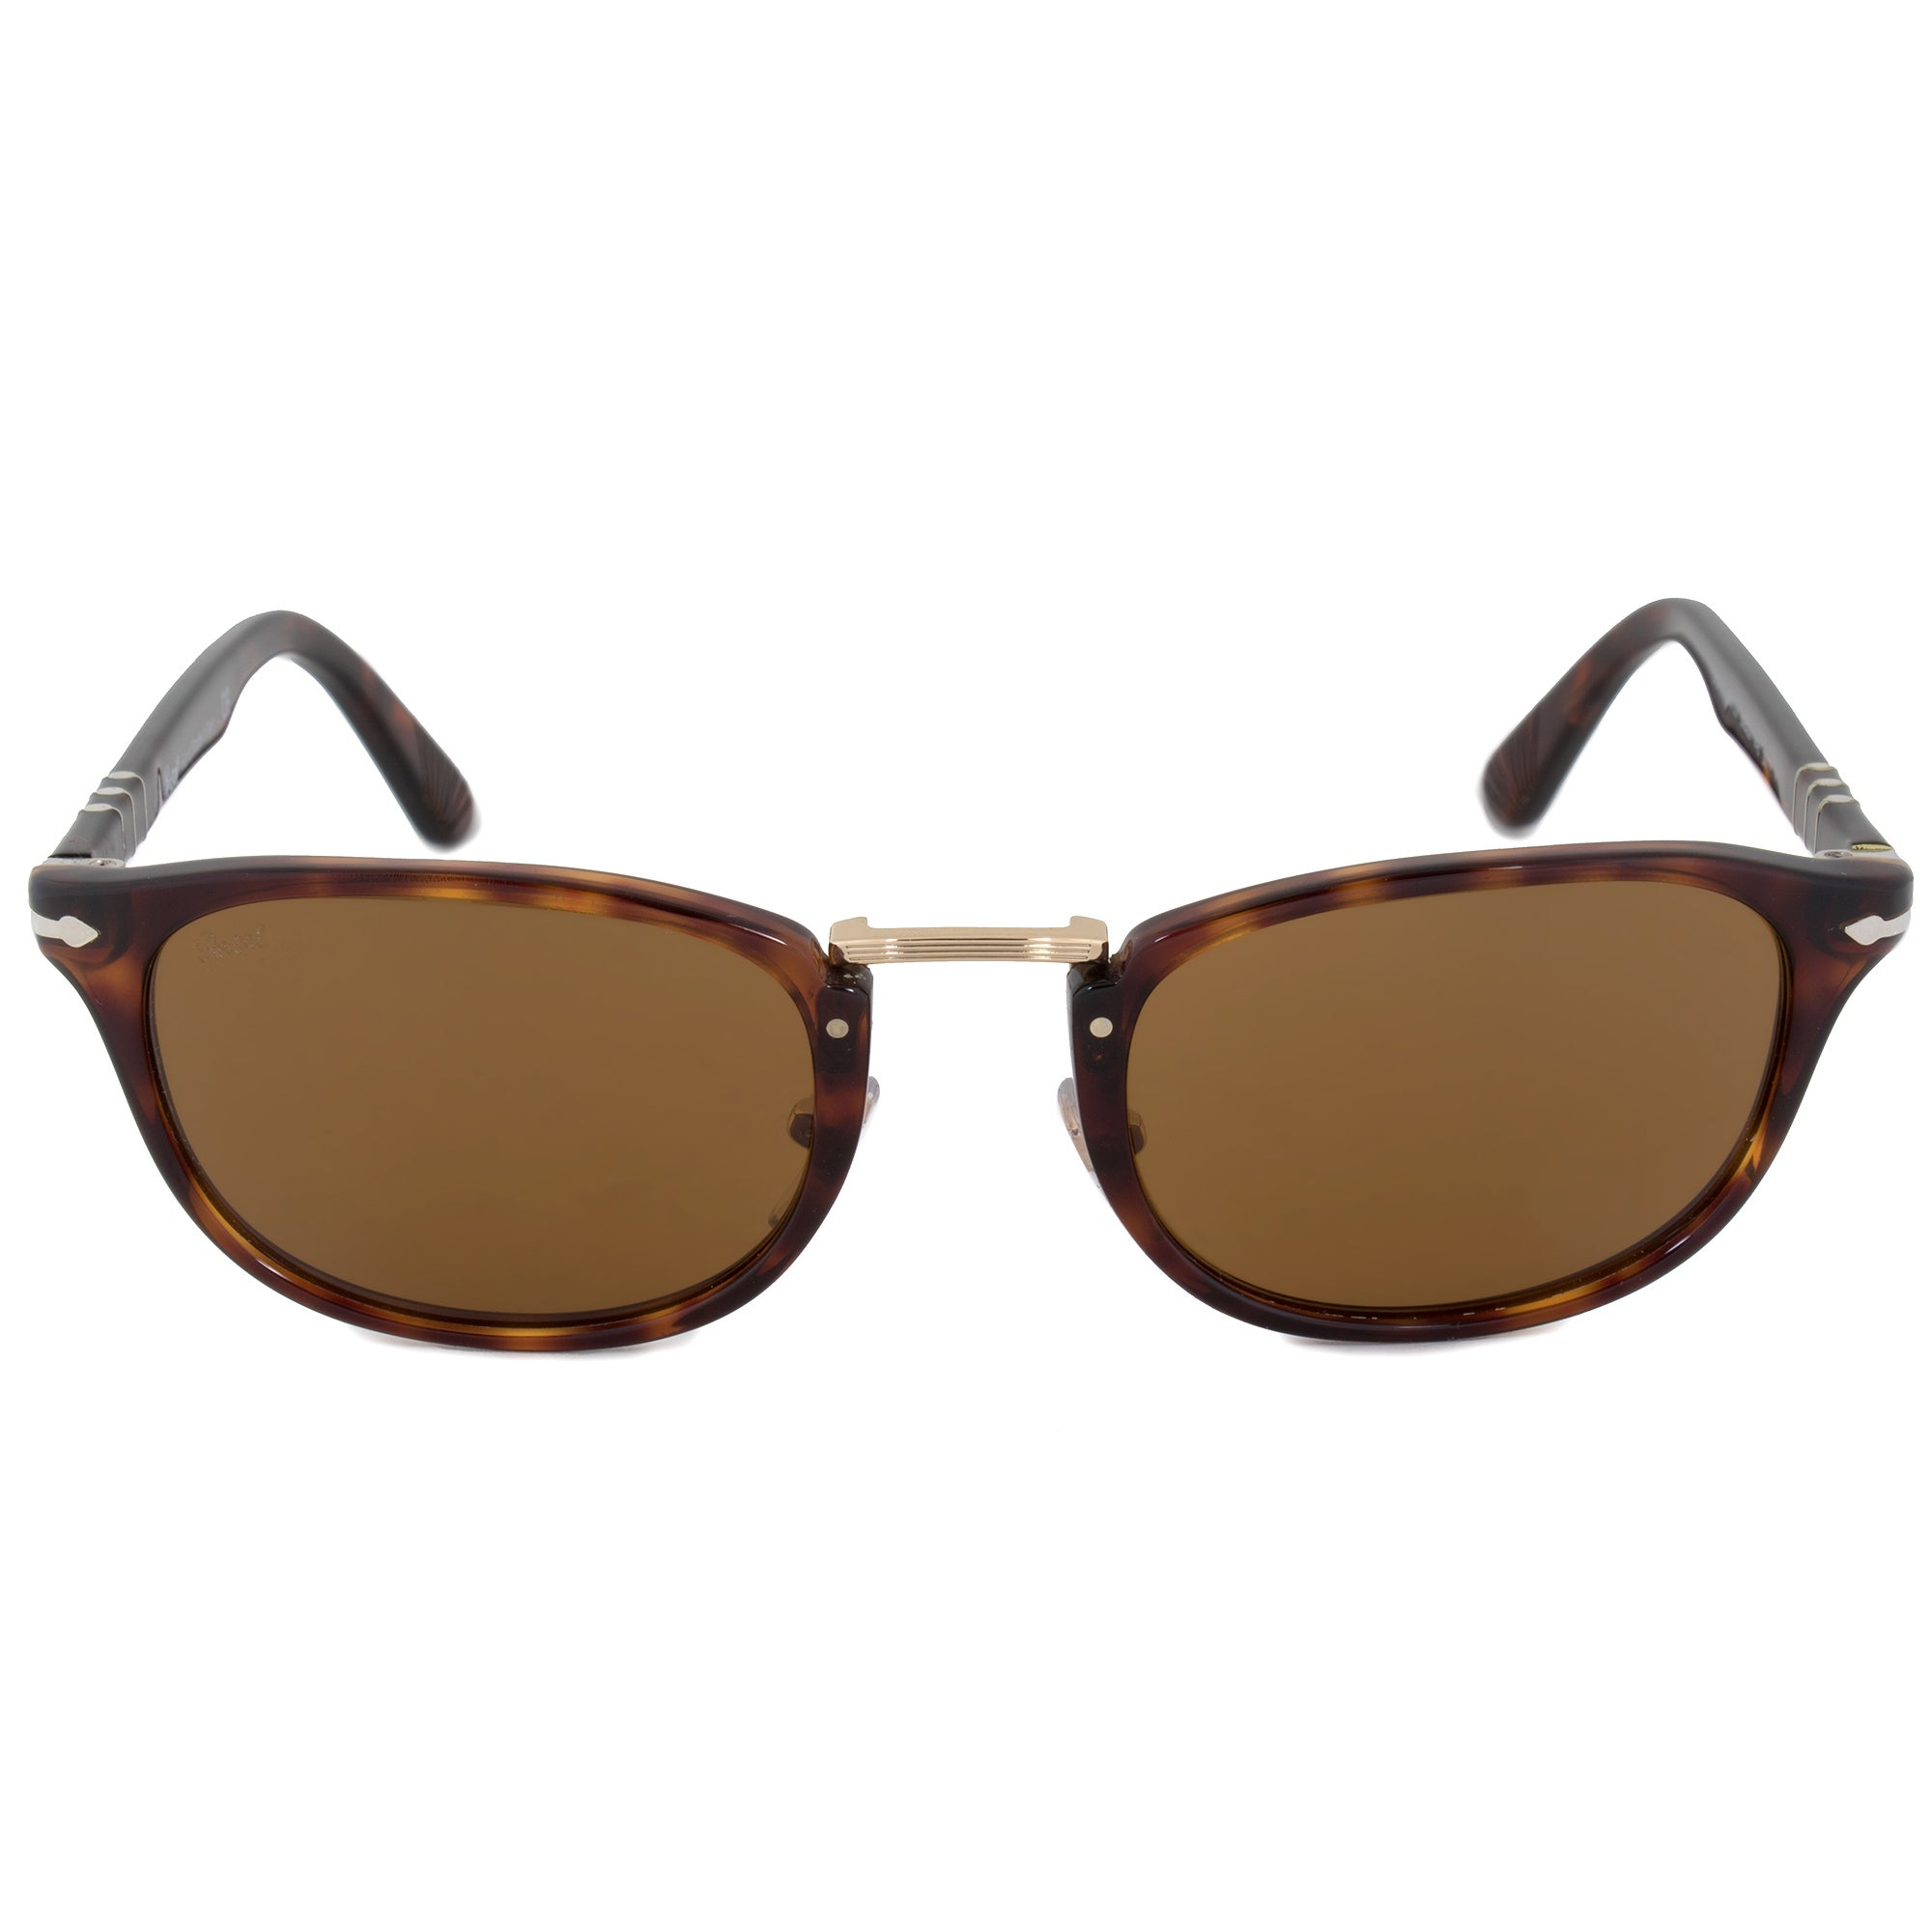 8e98ad8ef5af6 Shop Persol Typewriter Edition Square Sunglasses PO3127S 24 33 52 ...